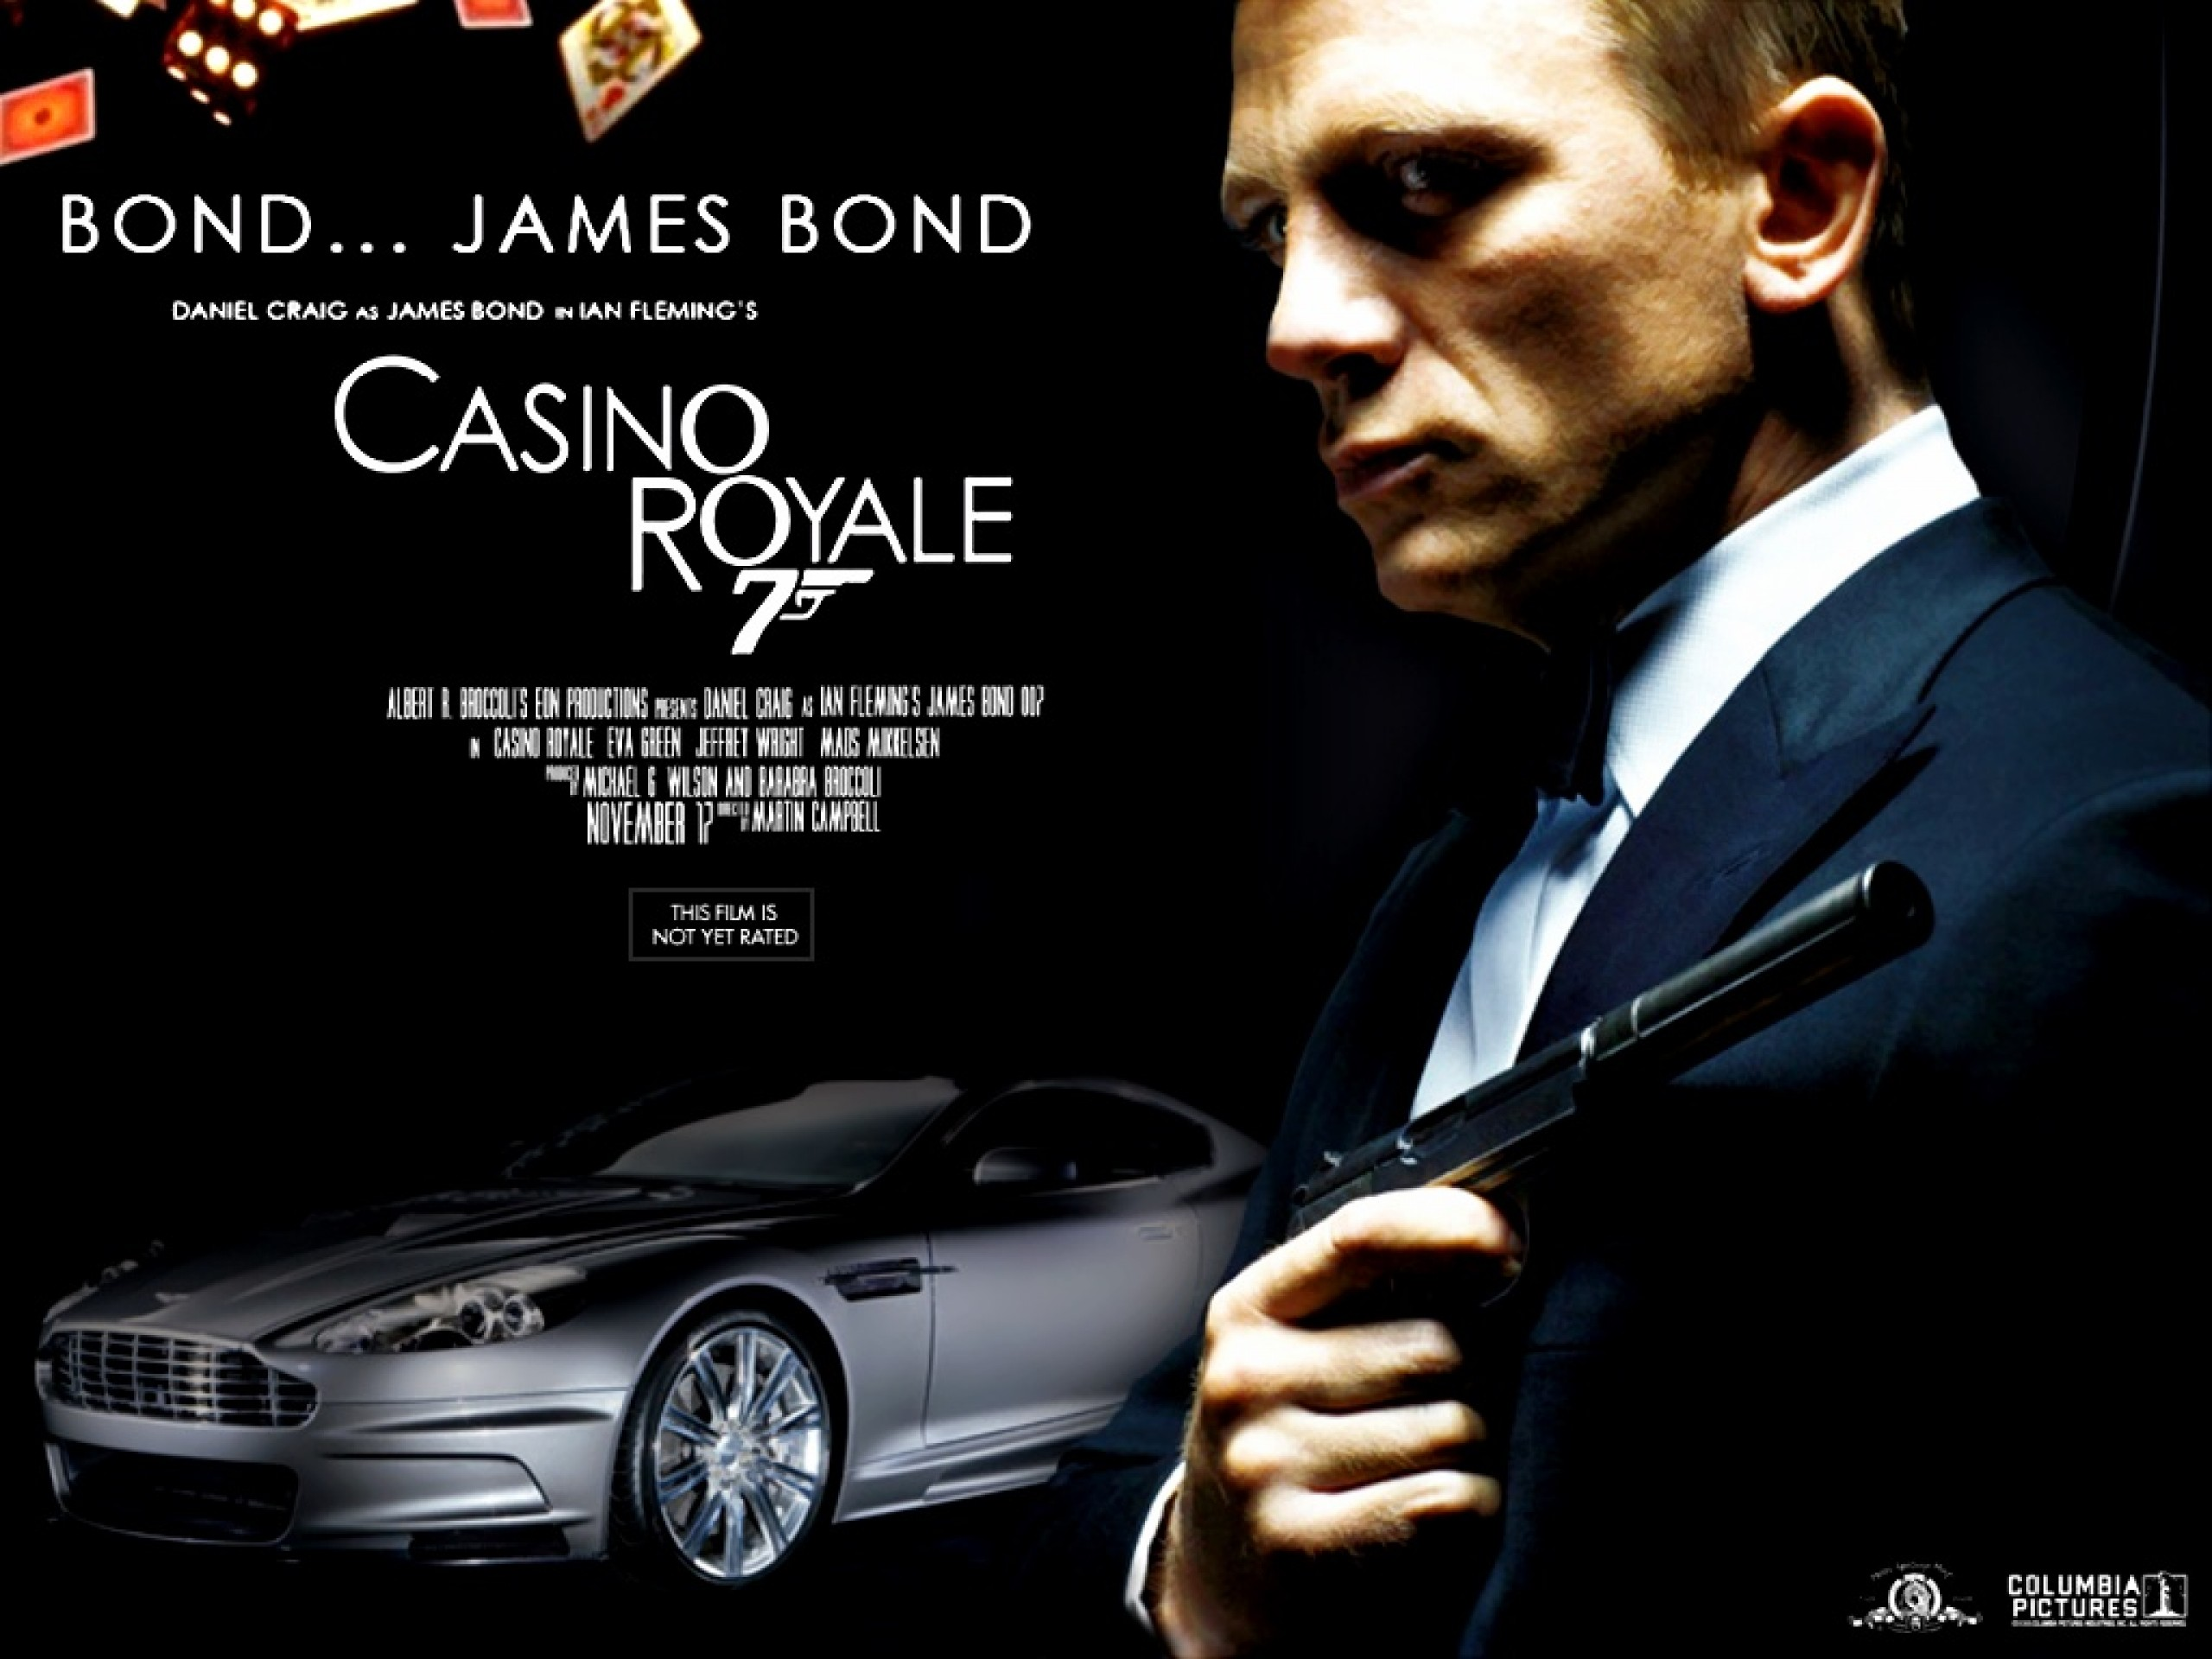 James bond casino royal theme song ameristar casino in kc mo